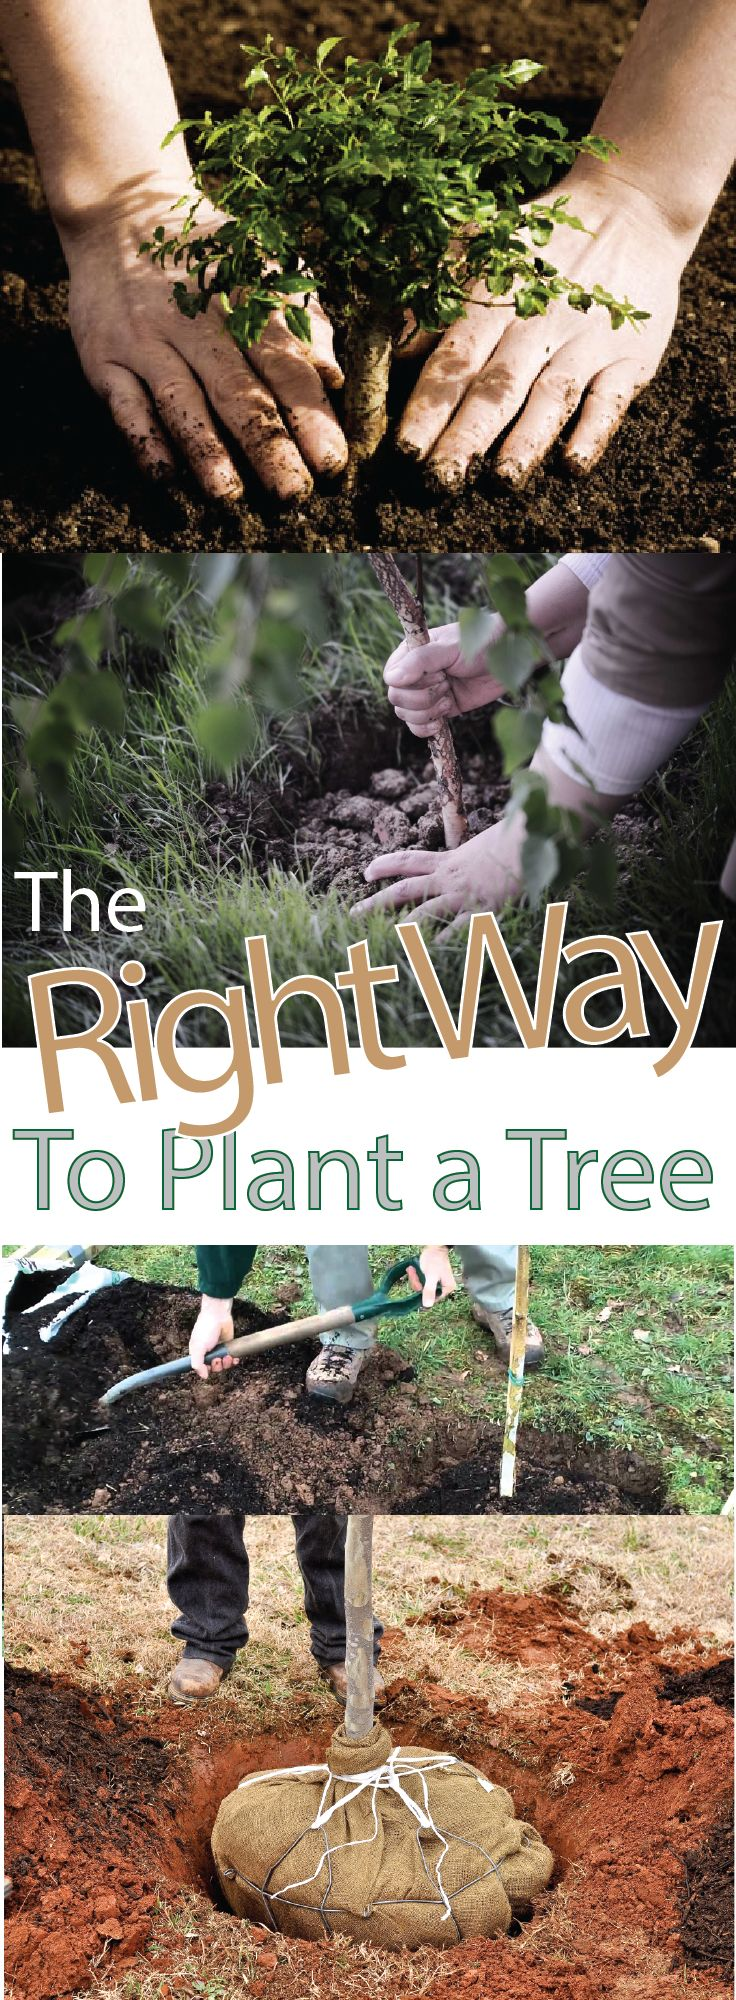 How To Plant A Tree – Making DIY Fun